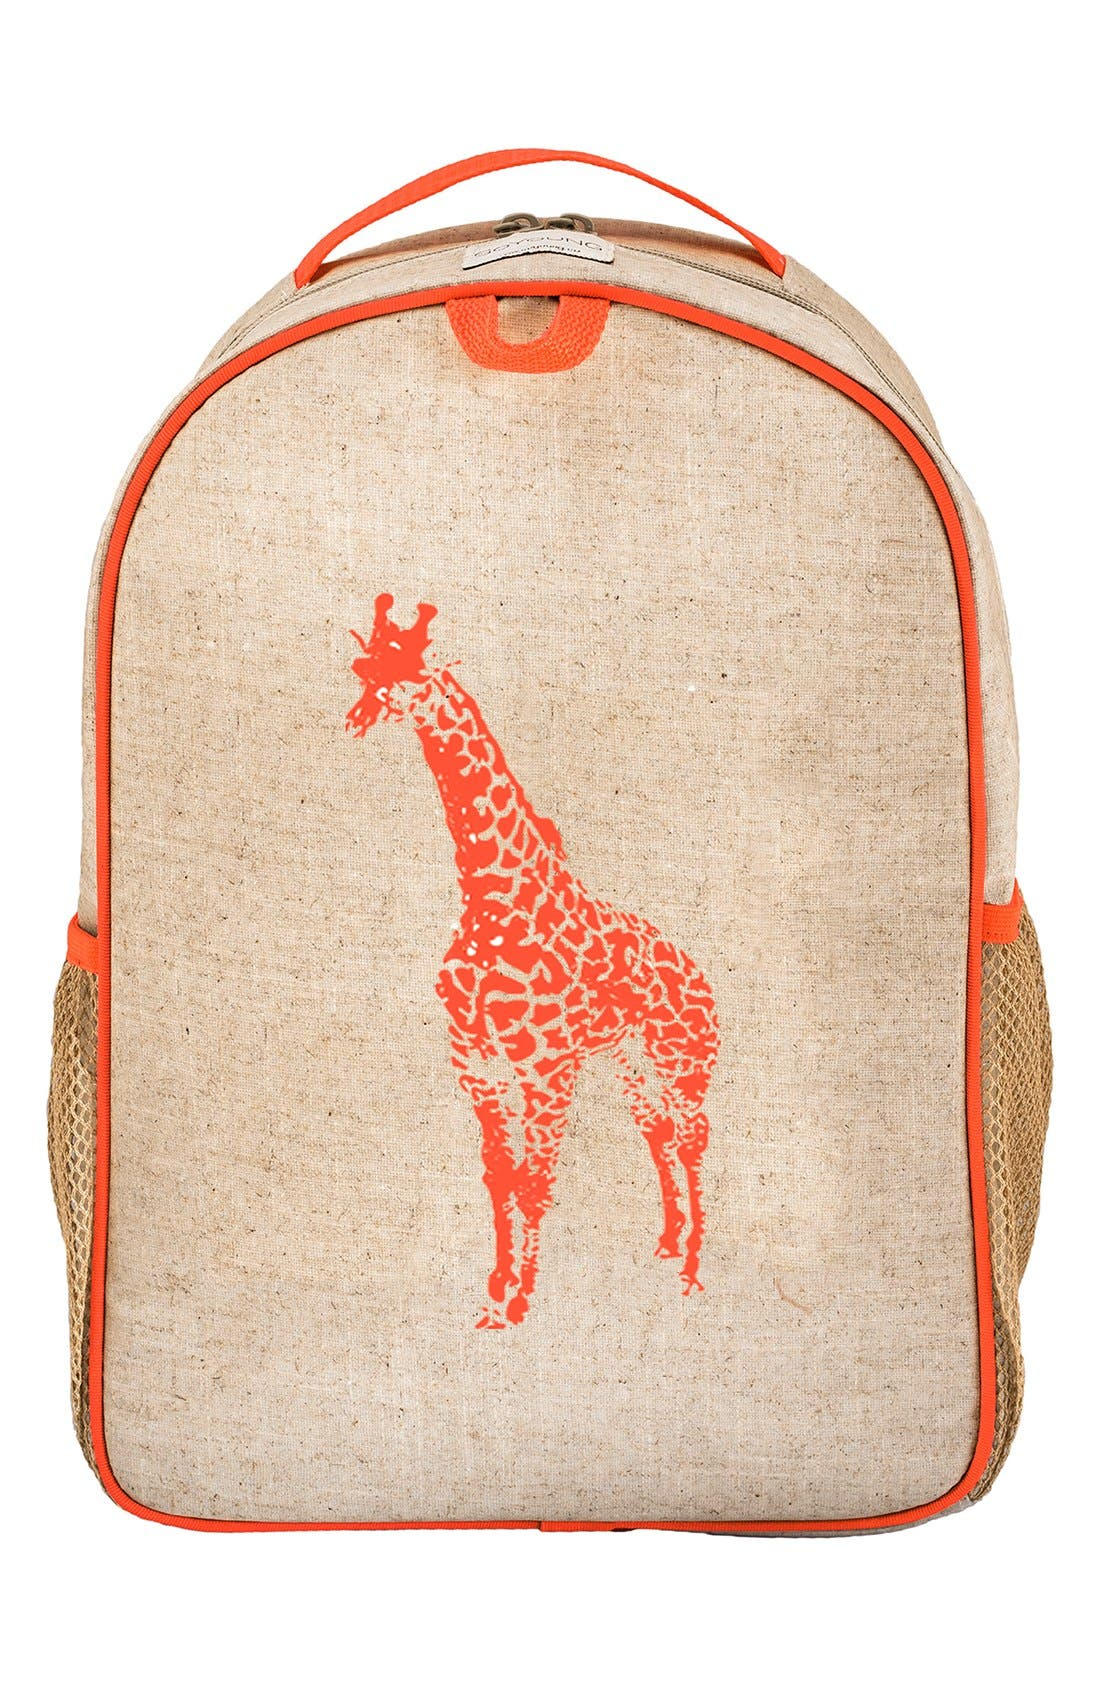 Main Image - SoYoung Linen & Cotton Backpack (Kids)